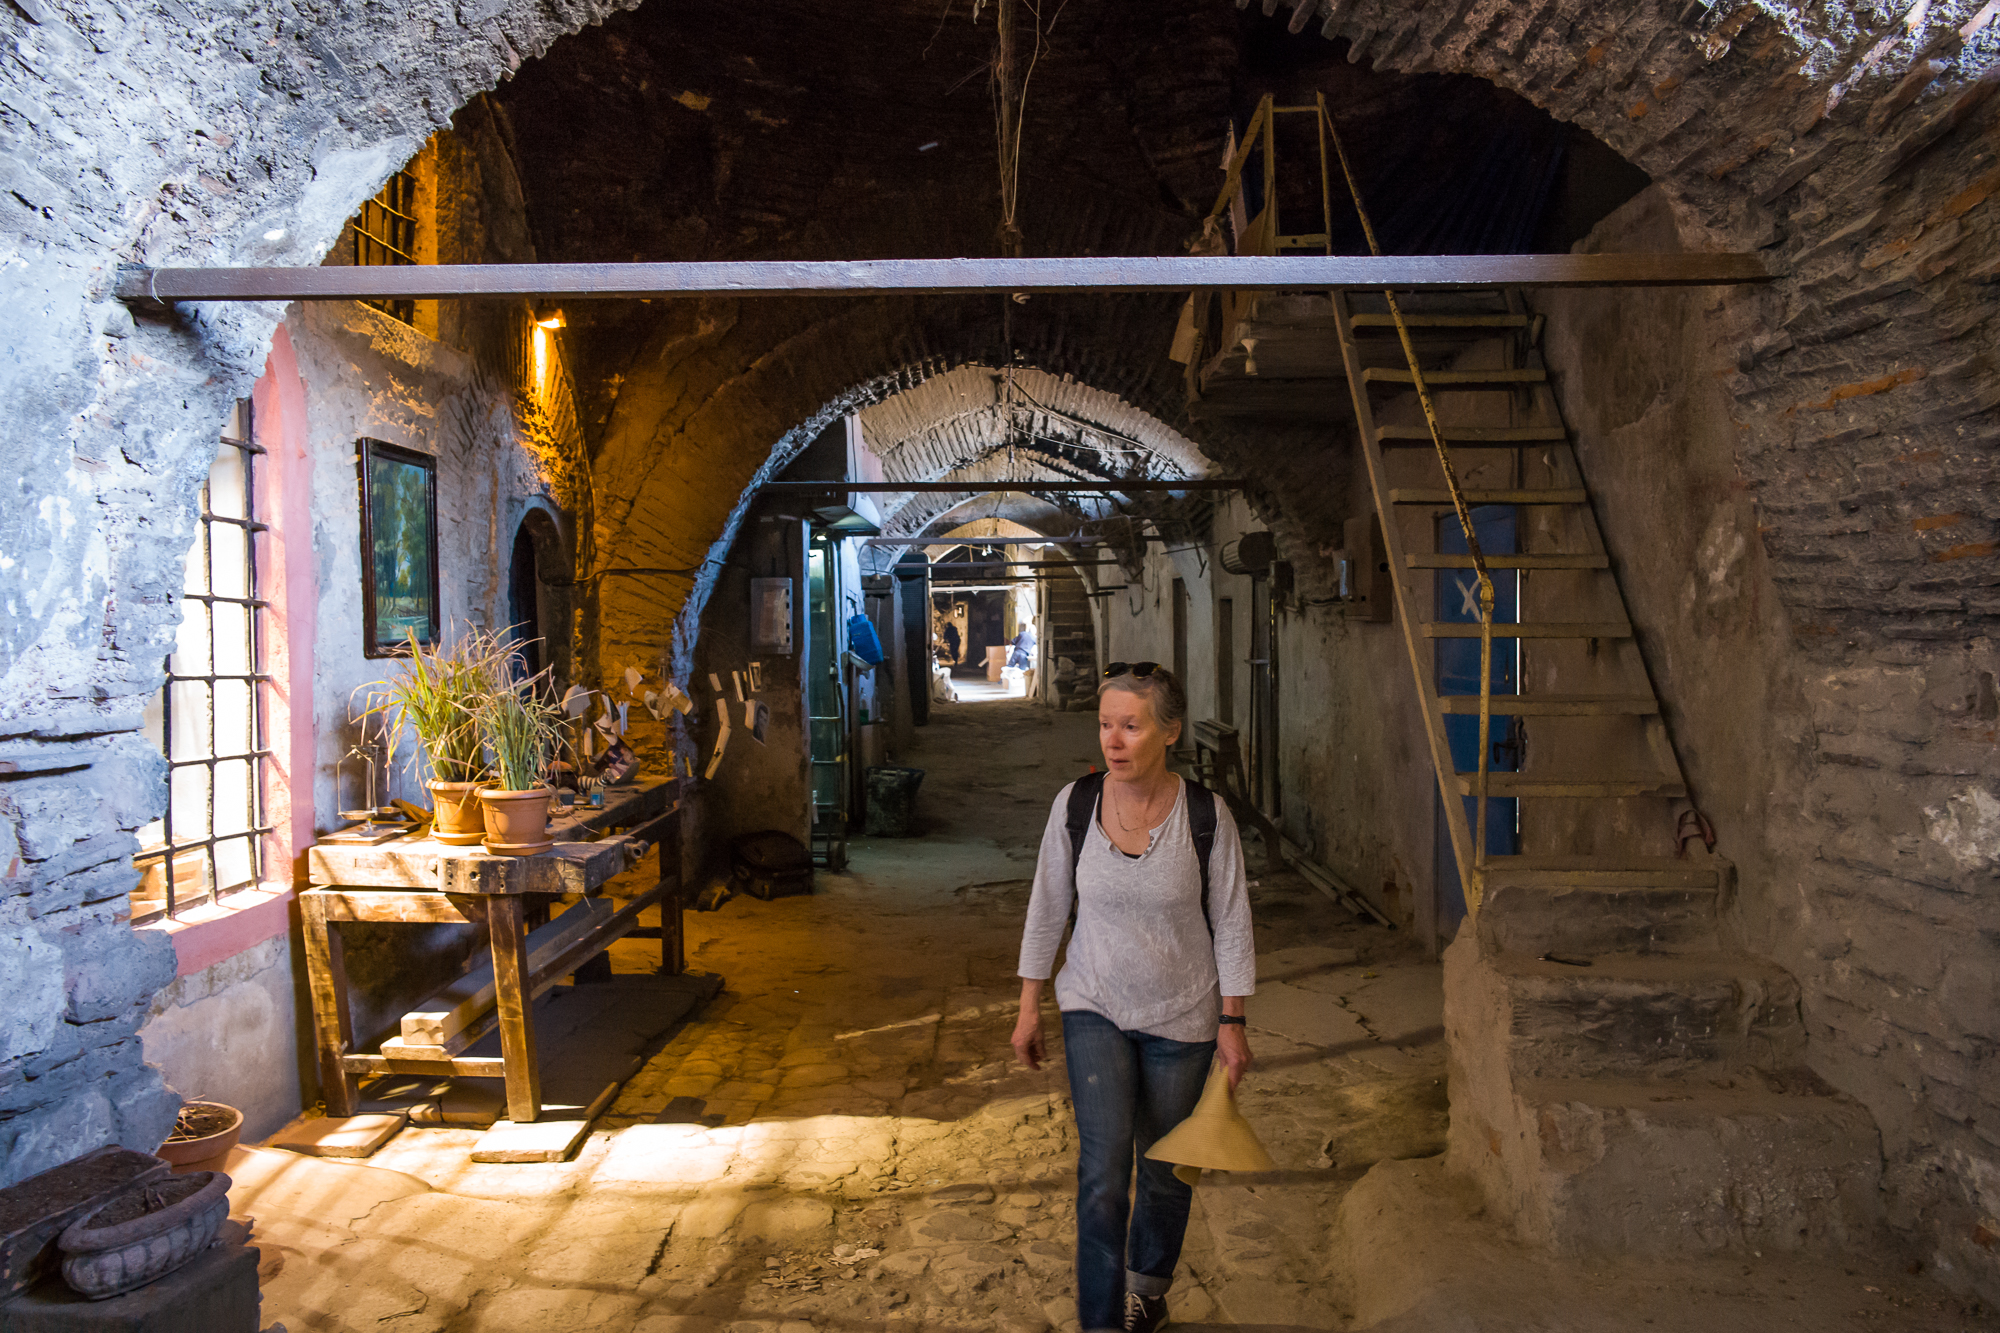 Walking the back alleys and passage ways of the Hans